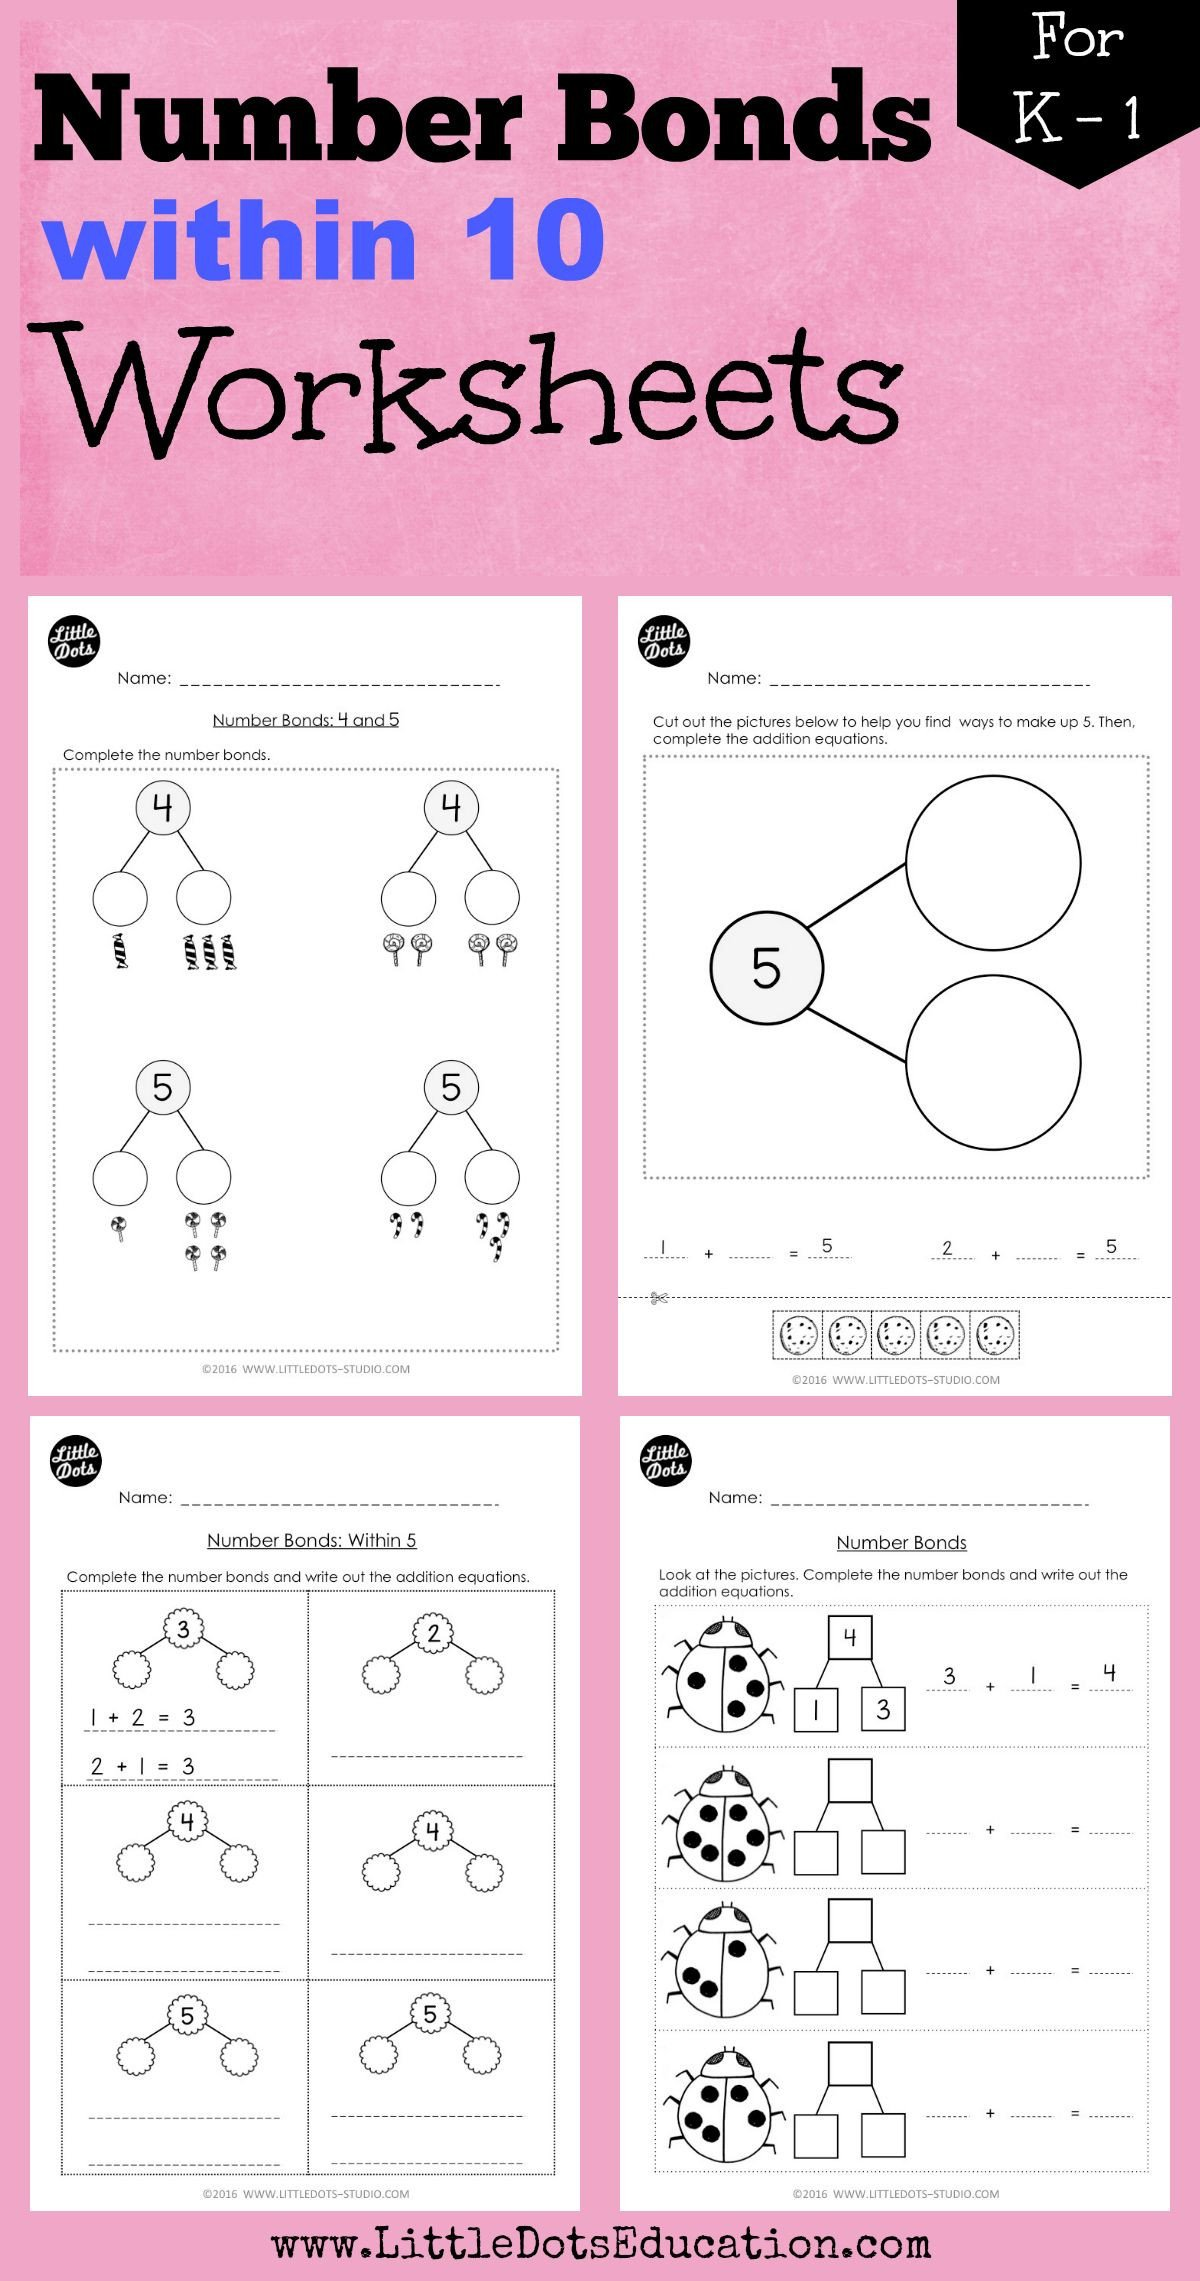 Number Bond Worksheets Kindergarten Kindergarten Math Number Bond Worksheets and Activities